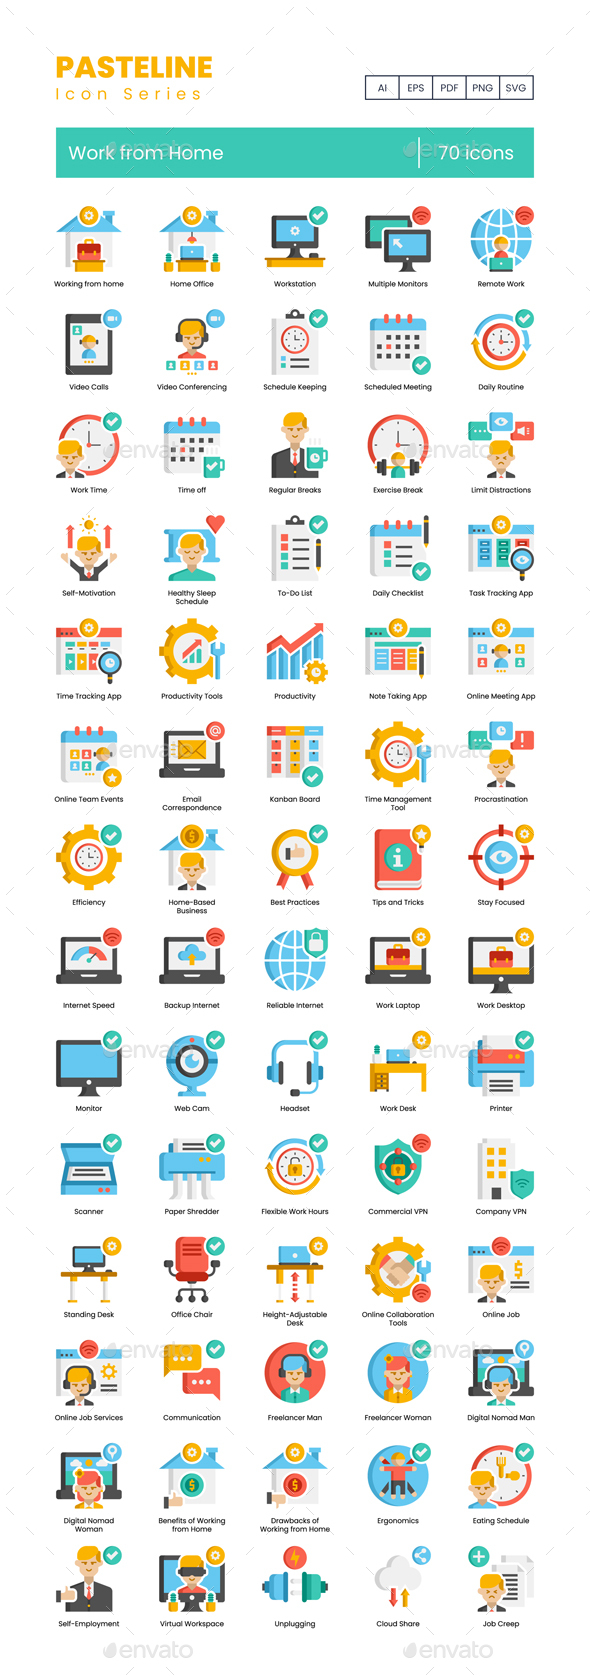 70 Work from Home Icons - Pasteline Series